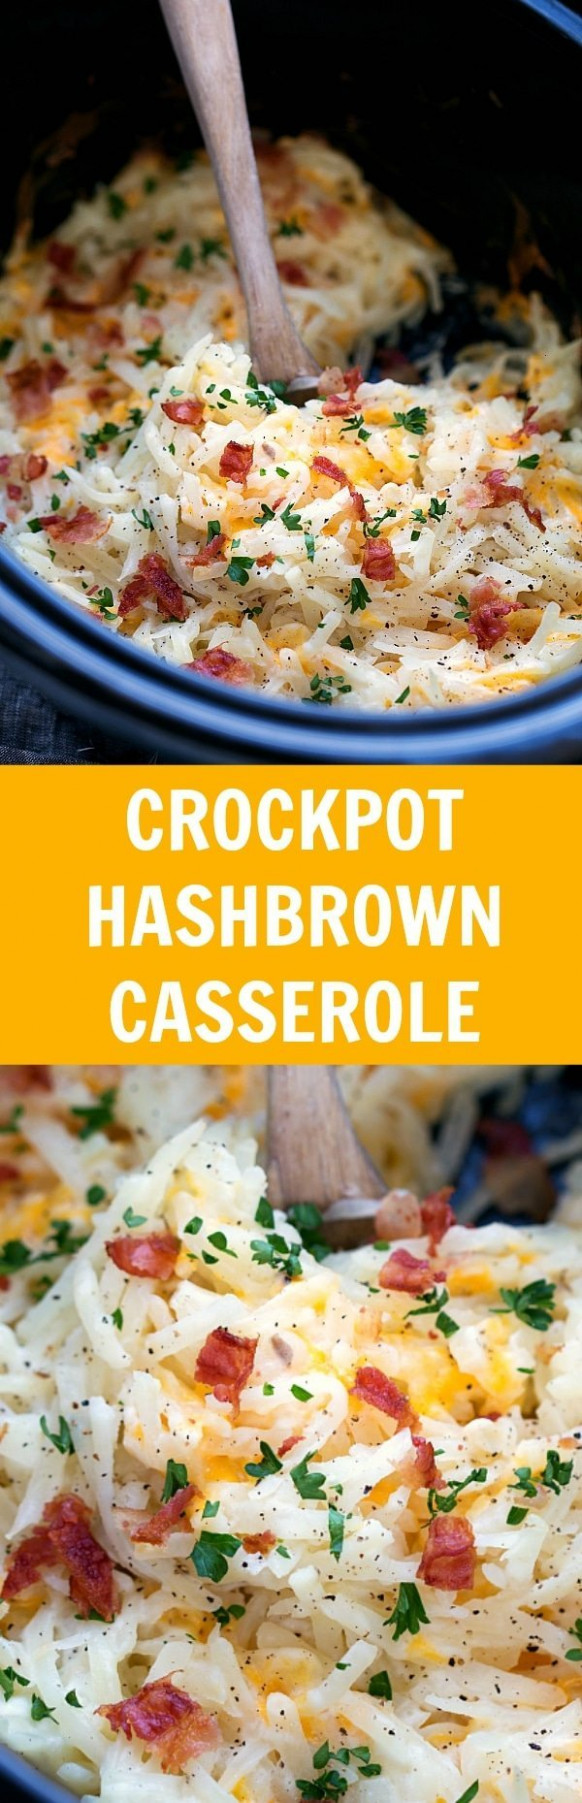 Breakfast Casserole With Cream Of Mushroom Soup And Hash …